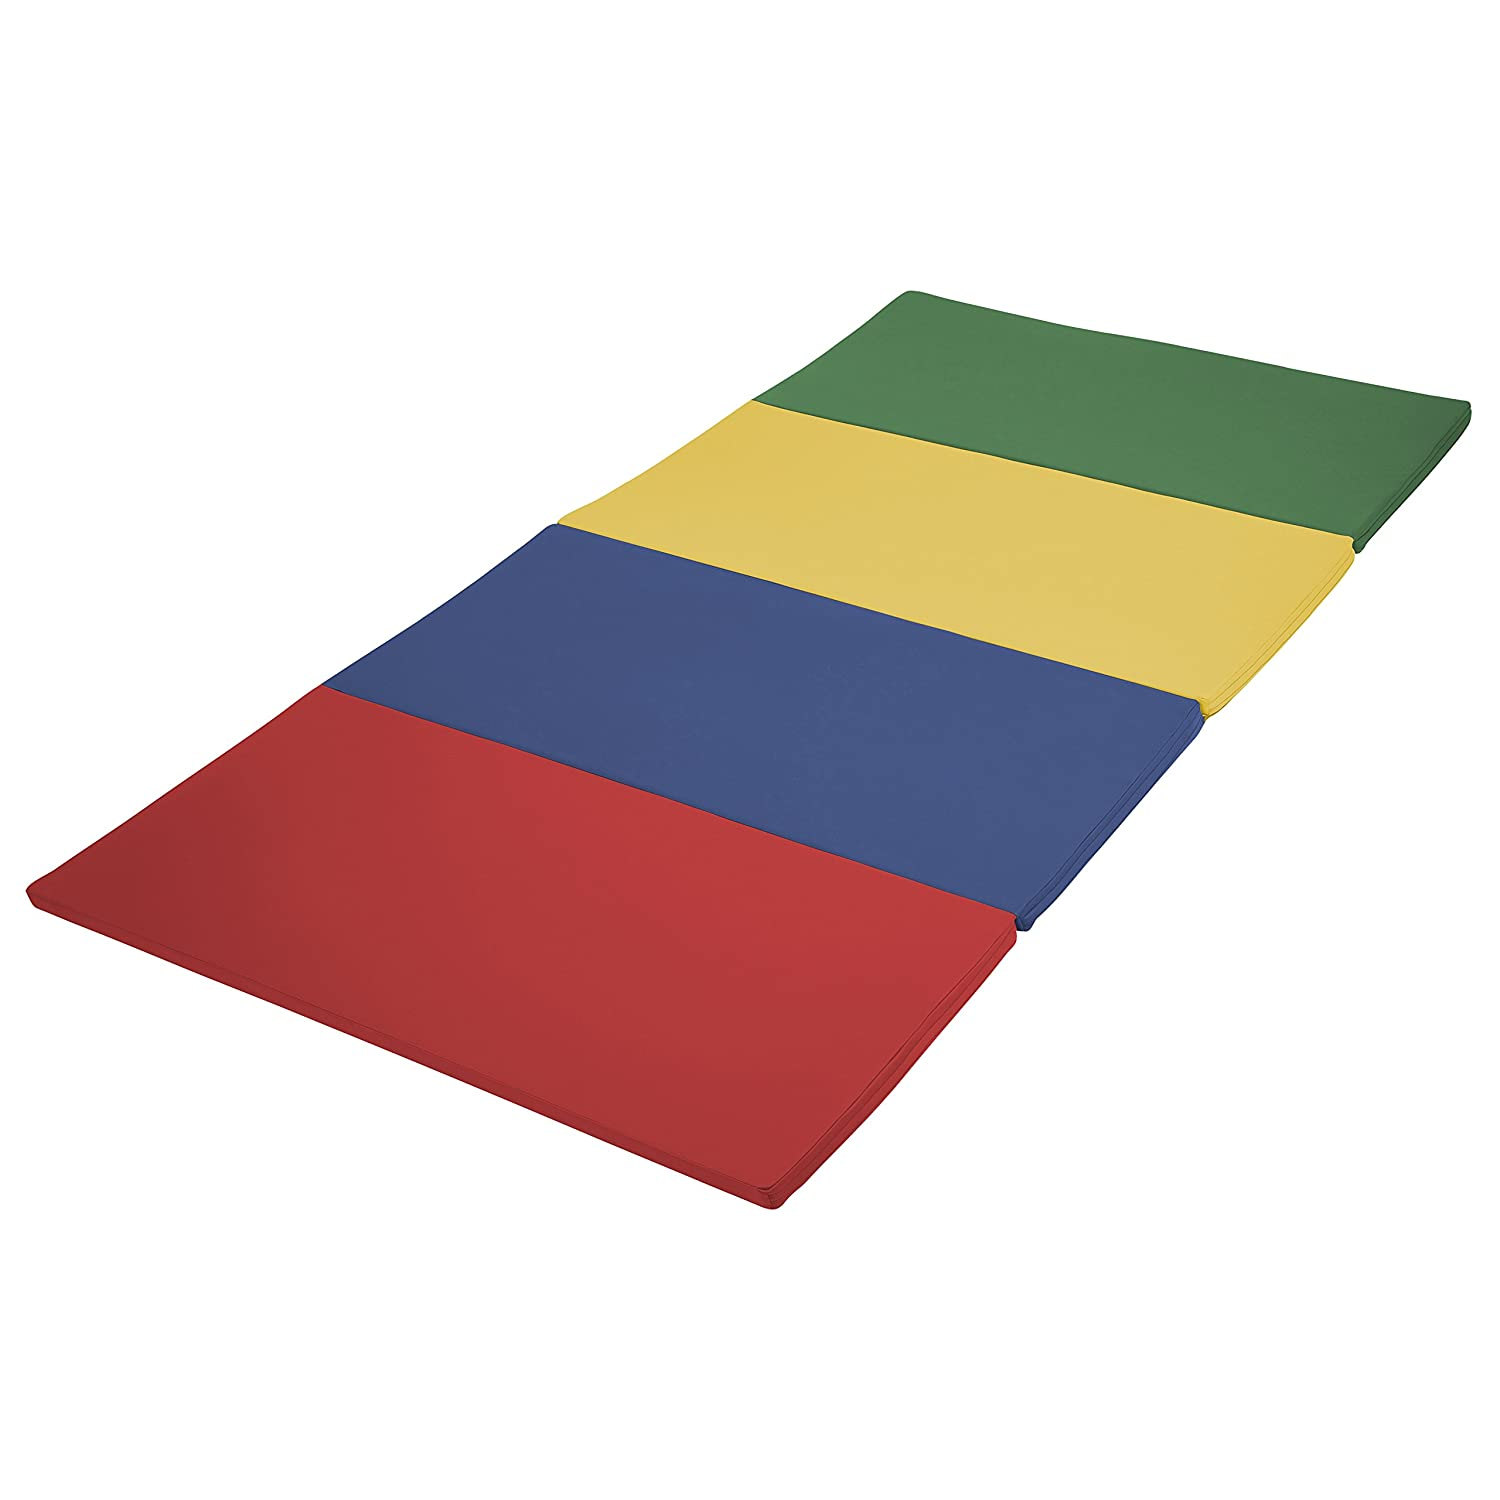 ECR4Kids SoftZone Folding Kids Tumbling Exercise Mat, 4 x 4 Feet, 1.5 Inches Thick, Assorted ECR4KIDS Education ELR-12204-AS